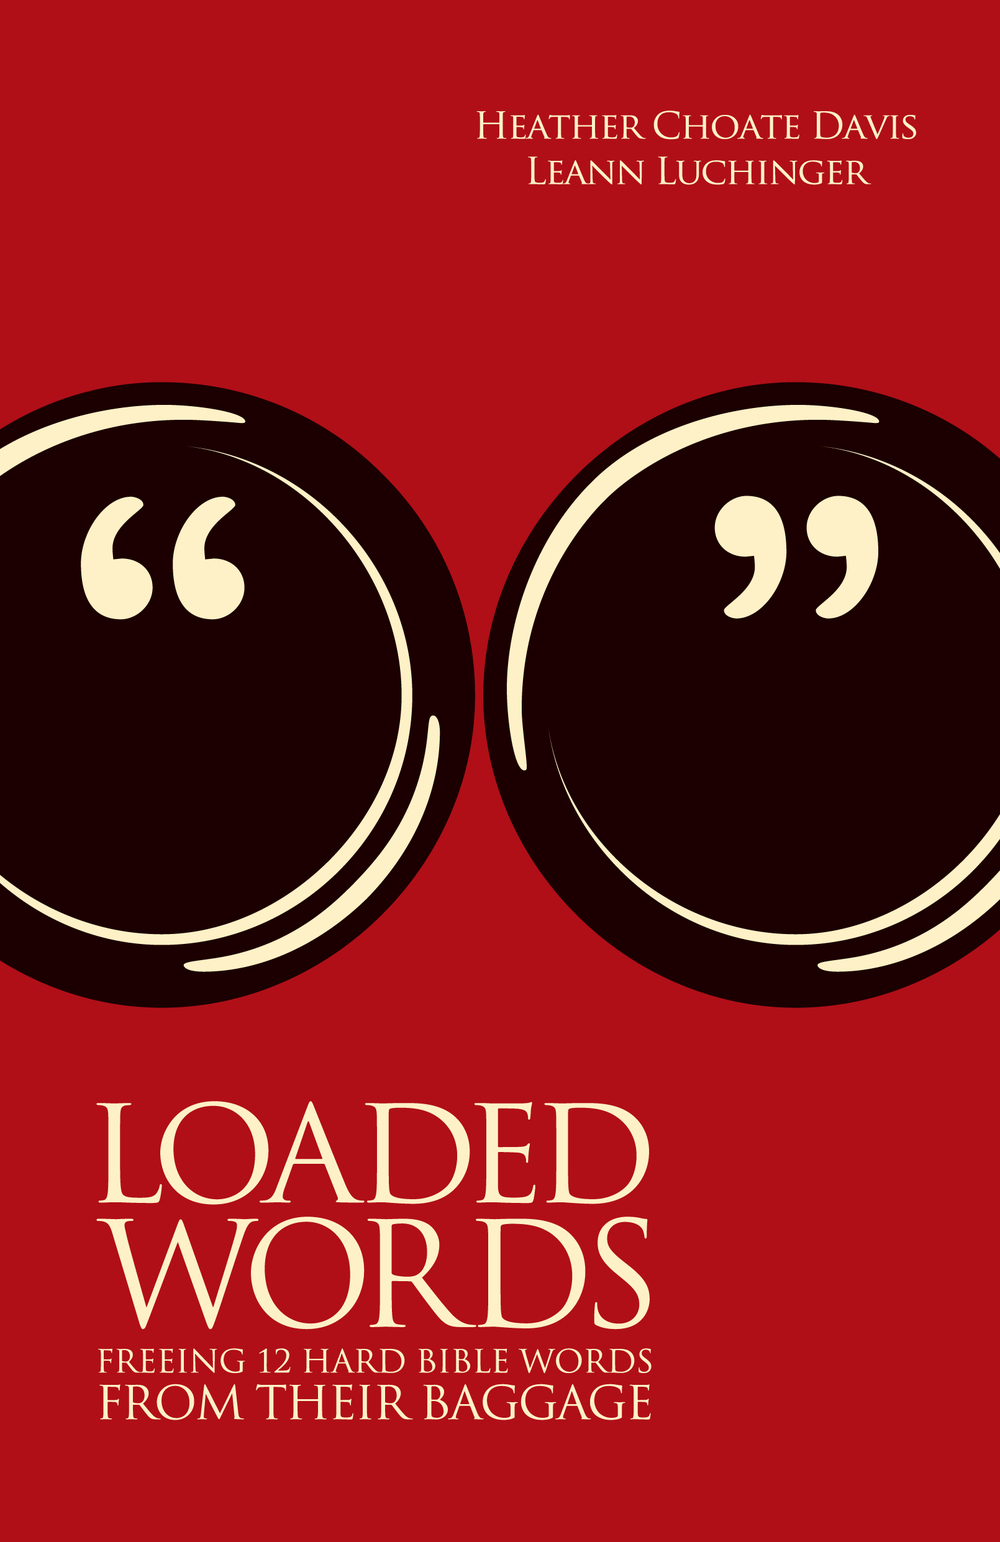 LOADED_WORDS_ebookNoColon-1.jpg